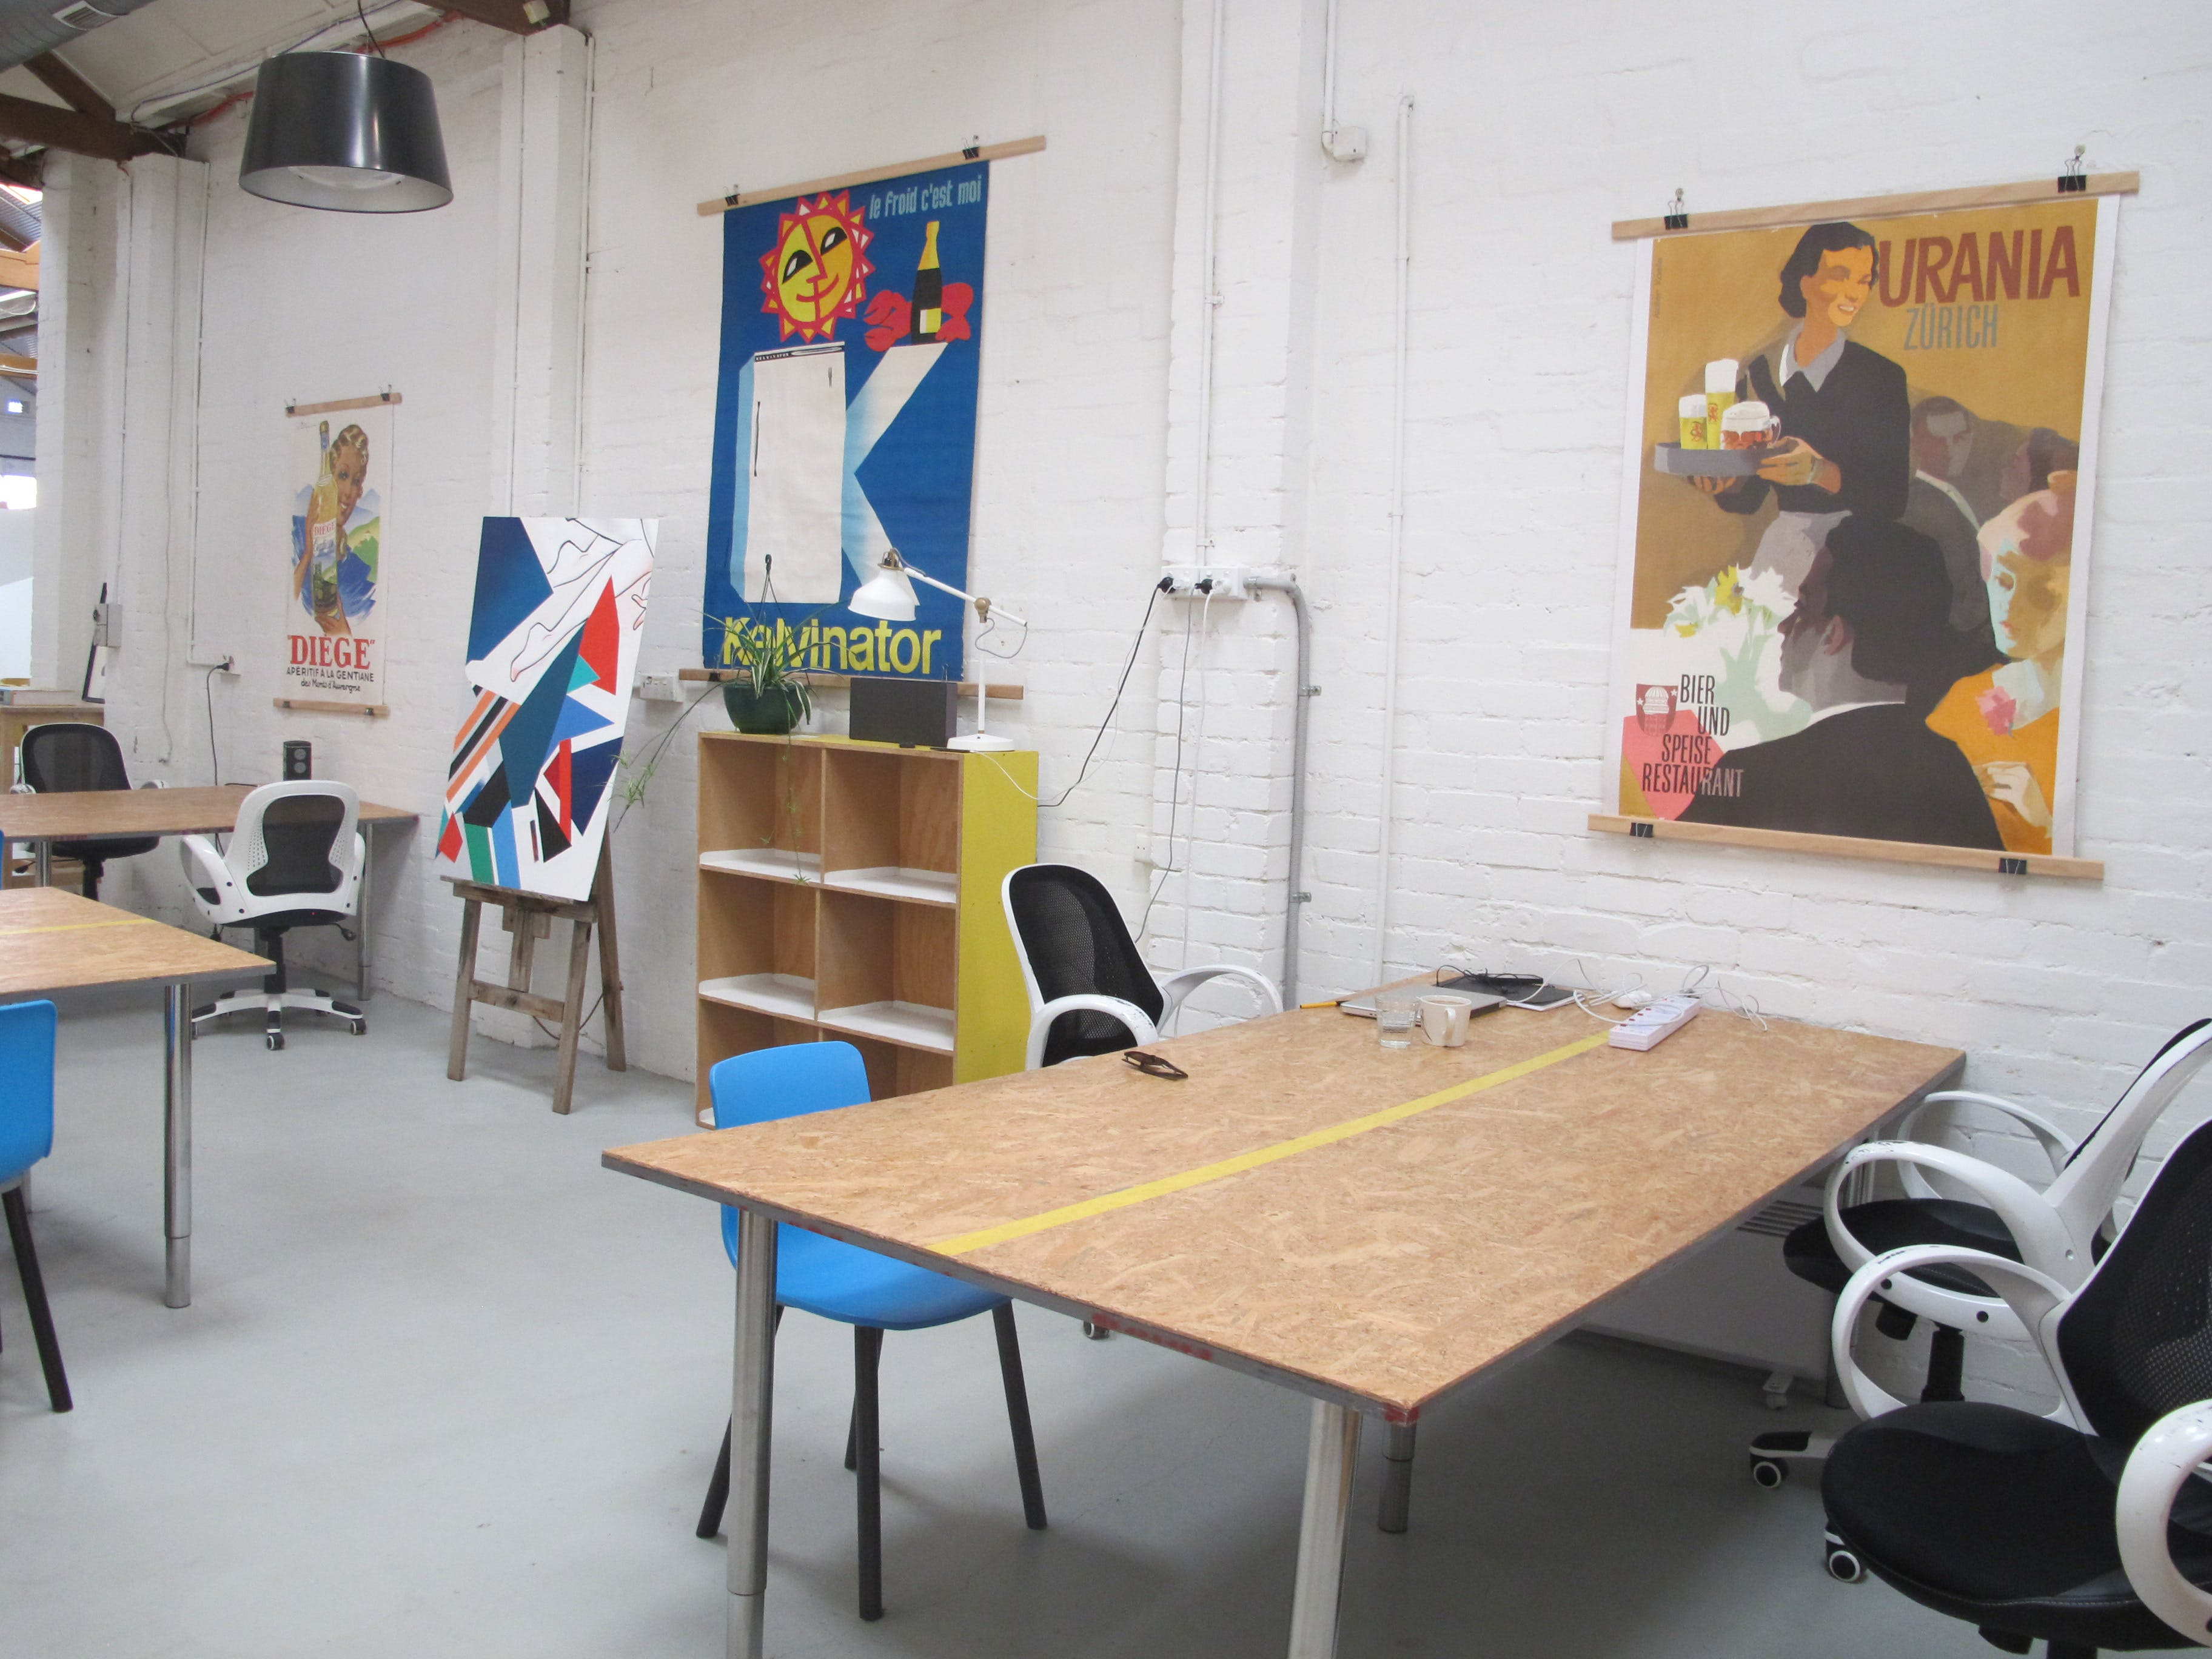 Co-working space suitable for creatives, image 1